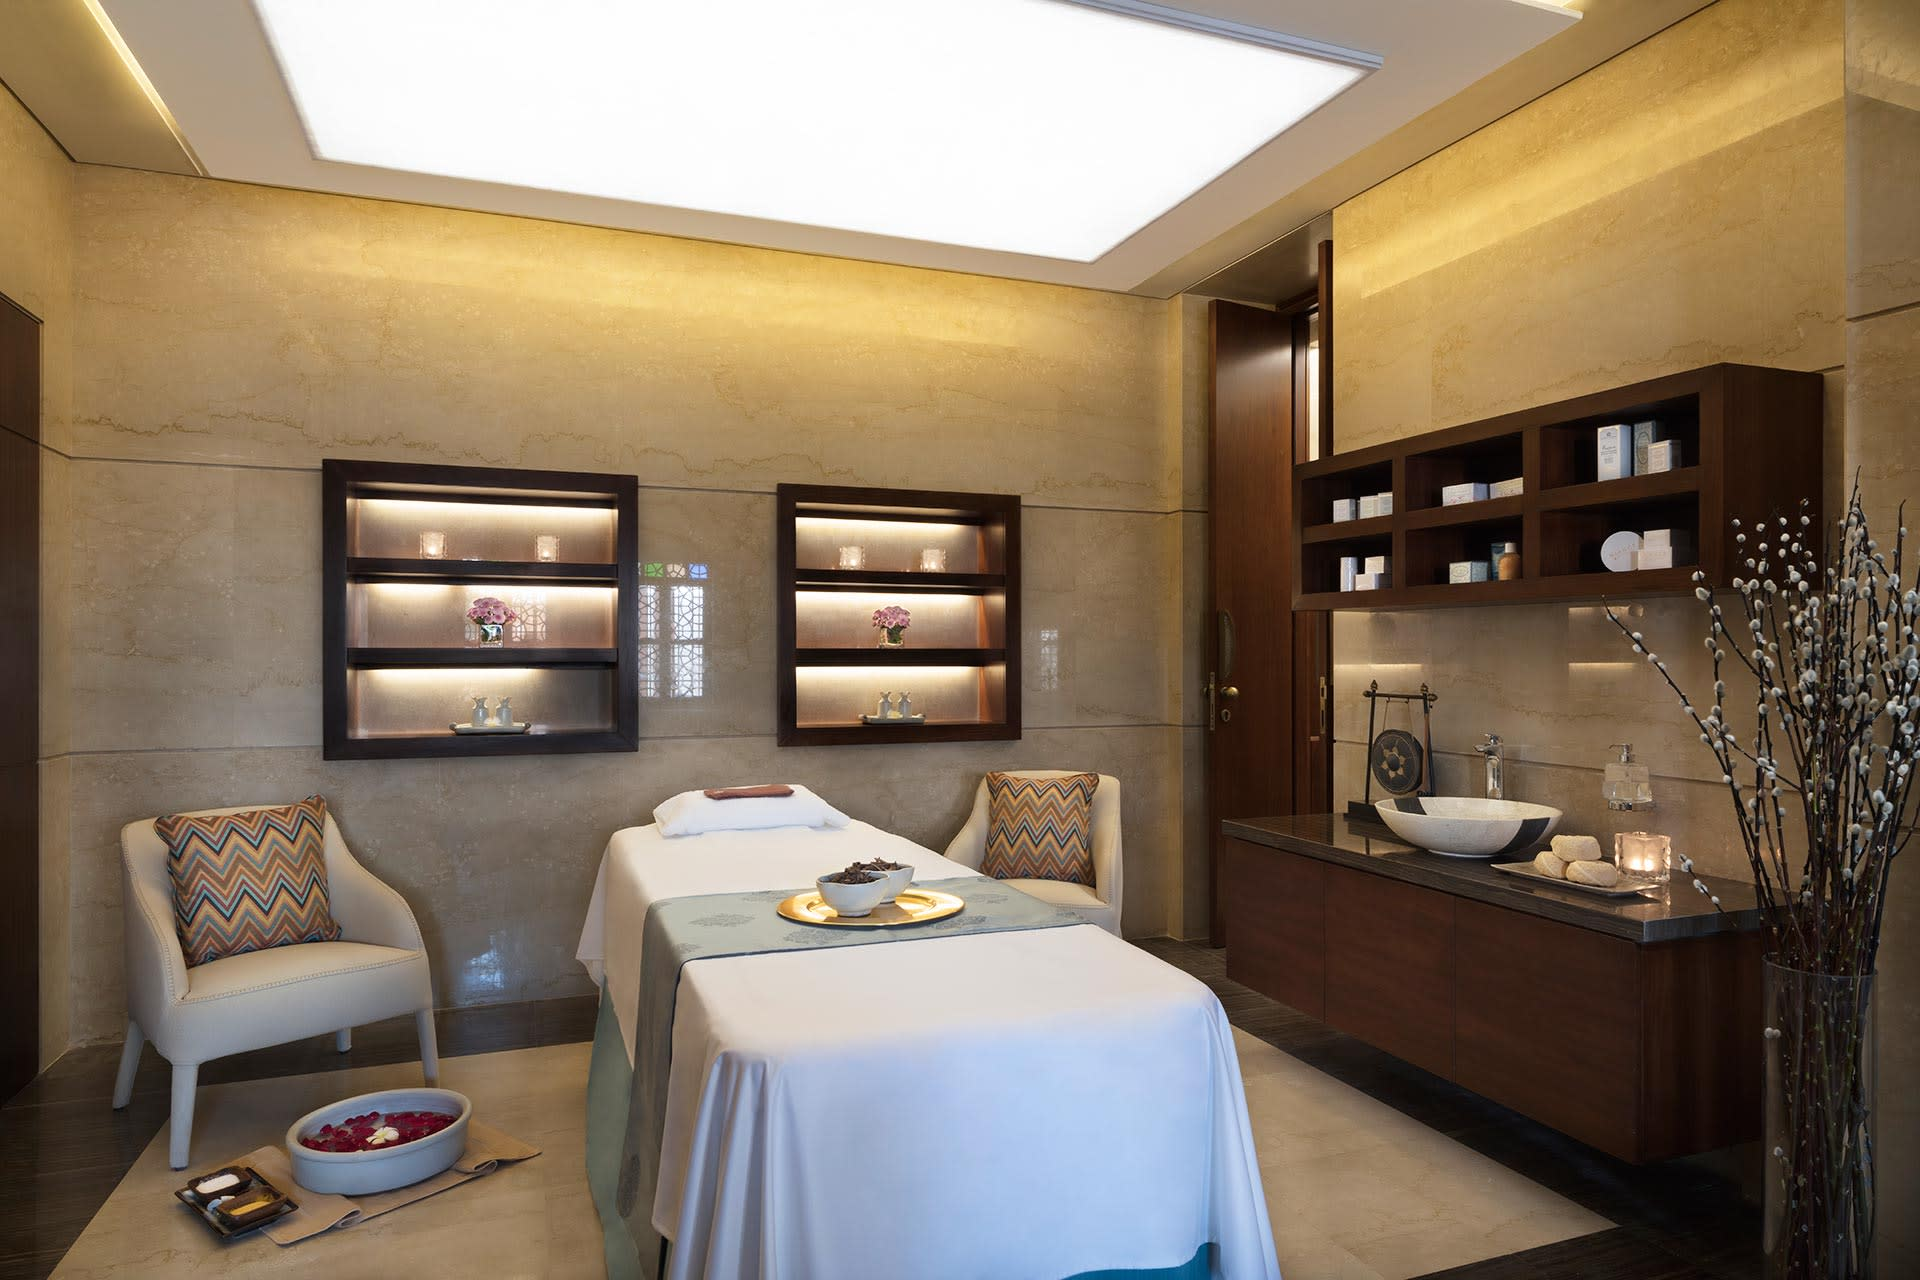 Souq Al Wakra Hotel Qatar by Tivoli - Spa Treatment Room